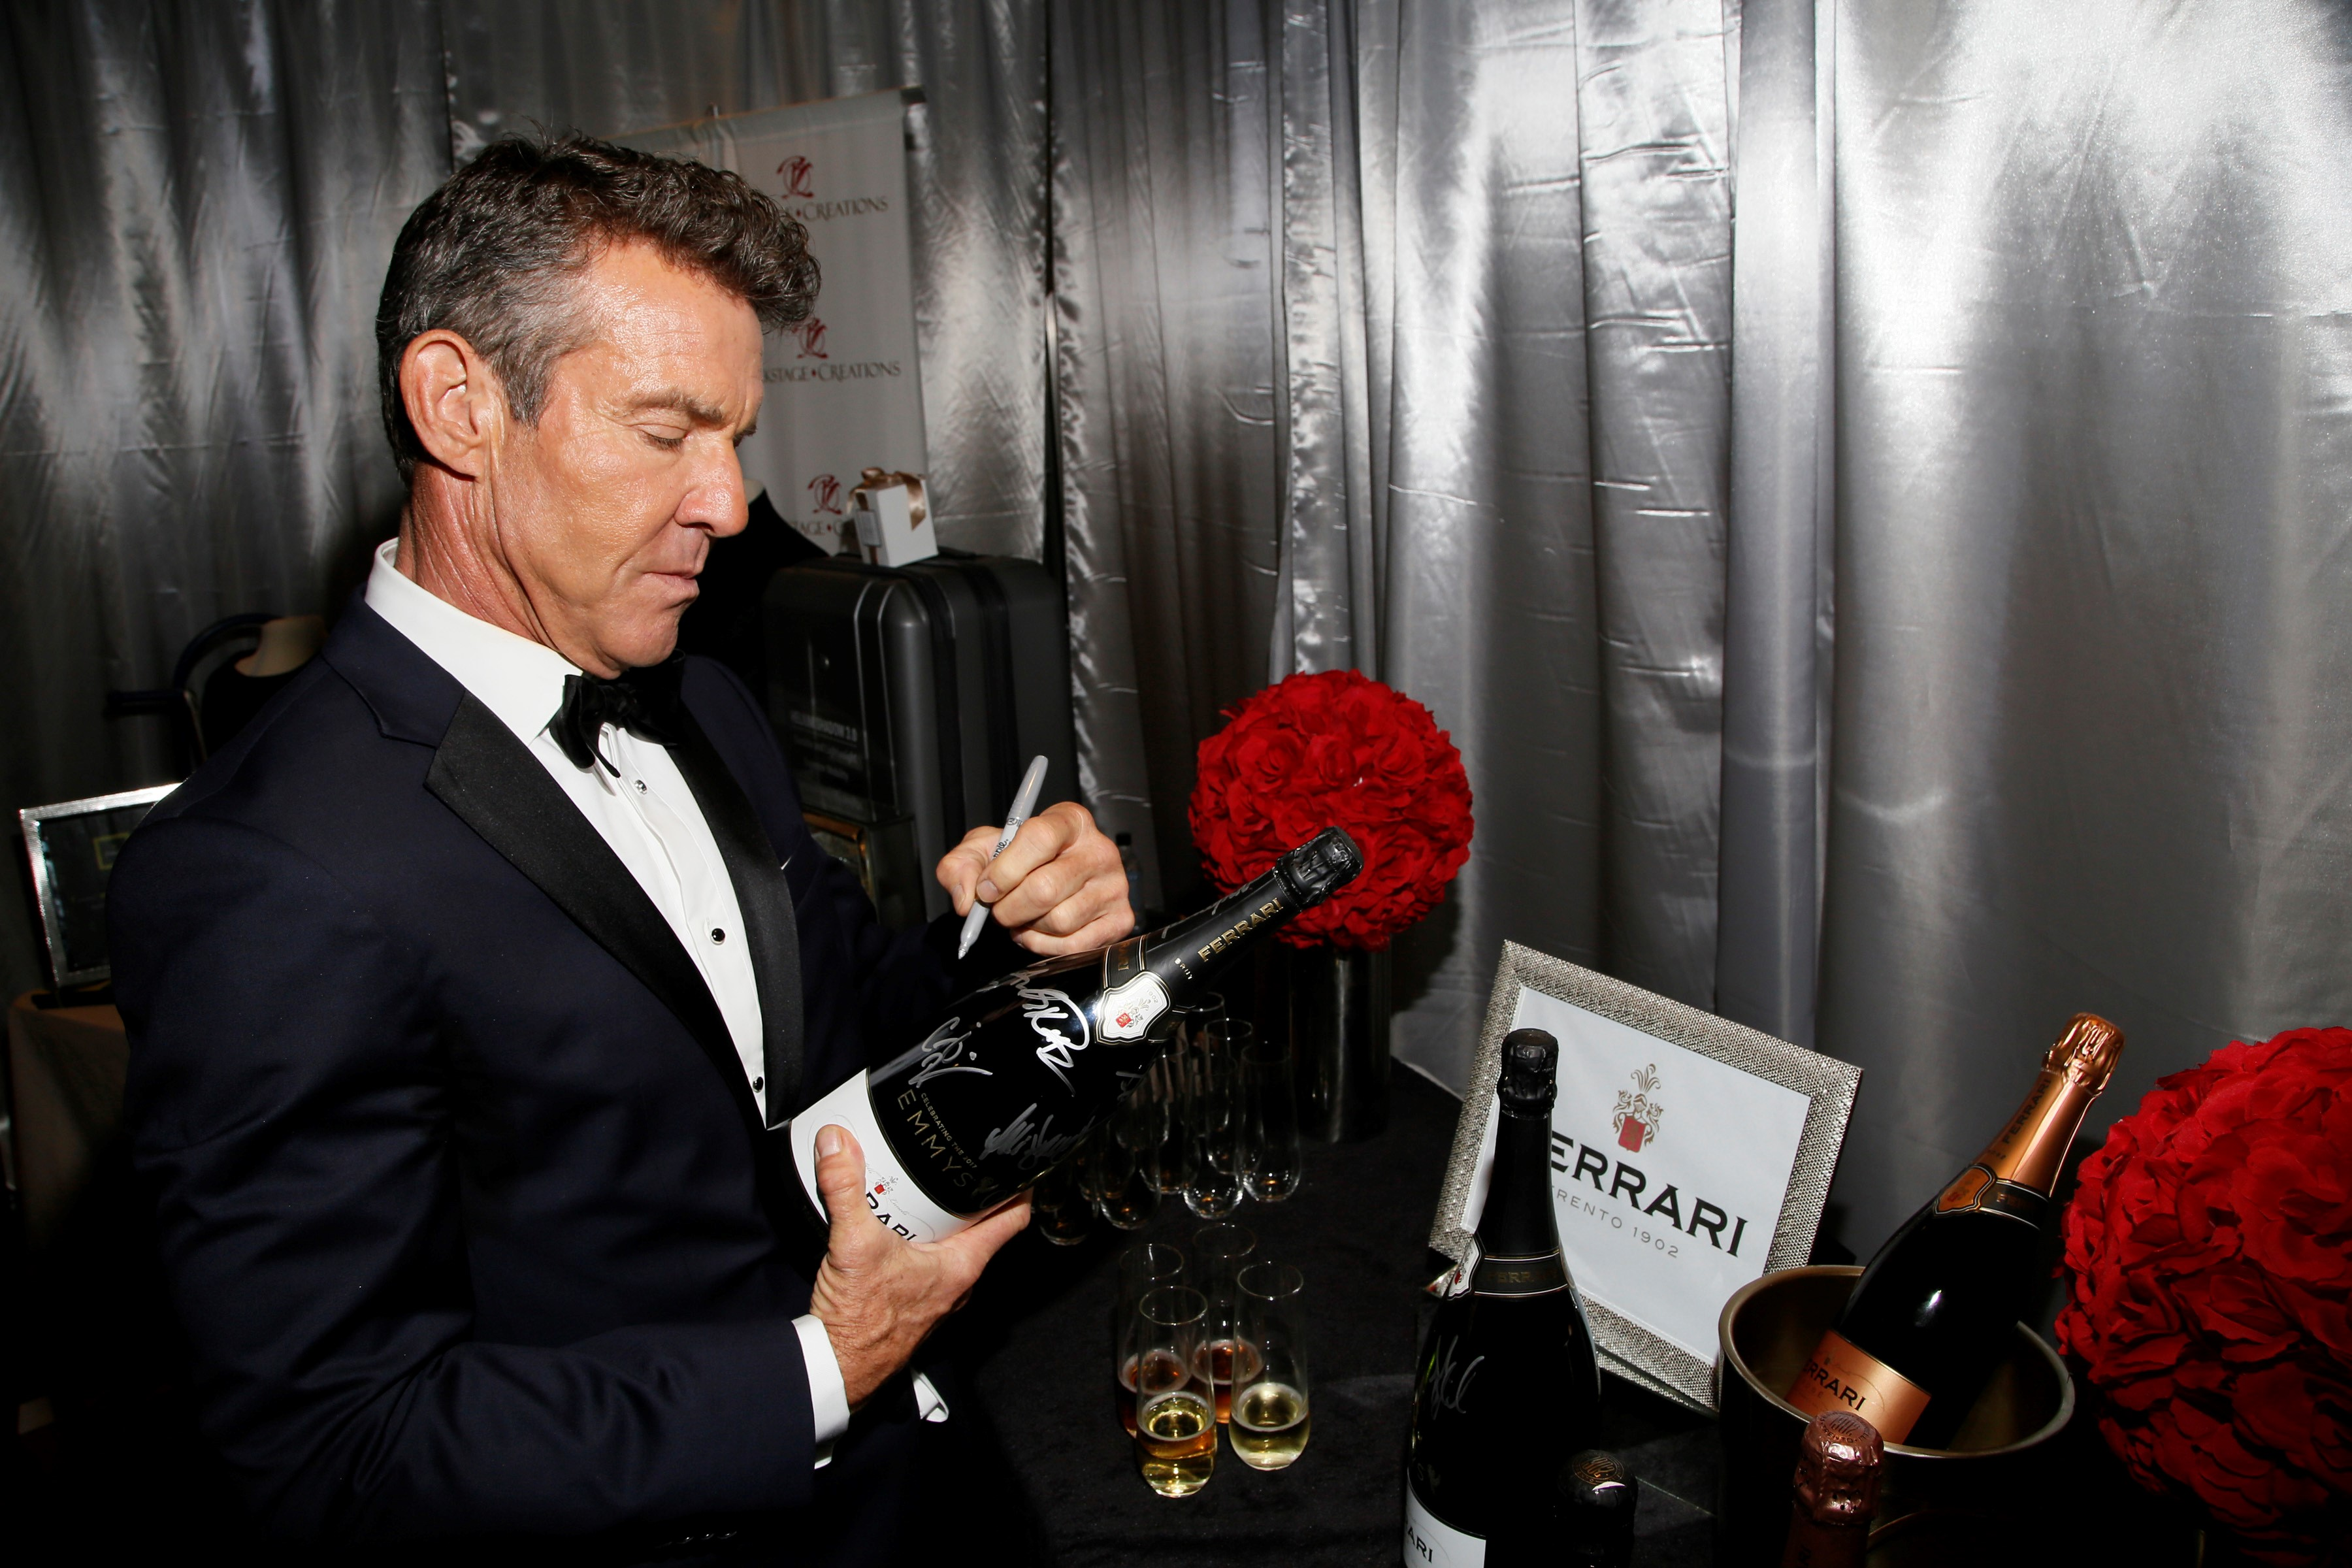 Dennis Quaid at Backstage Creations Giving Suite at the Emmys enjoying Kombucha Cleanse, Exclusive Traveler Club, Izumio, Ferrari Trento, Suzhou Tourism, Wolverine, Canyon Ranch, Delsey Luggage and more in the Josh Johnson Home designed lounge benefitting the Television Academy Foundation